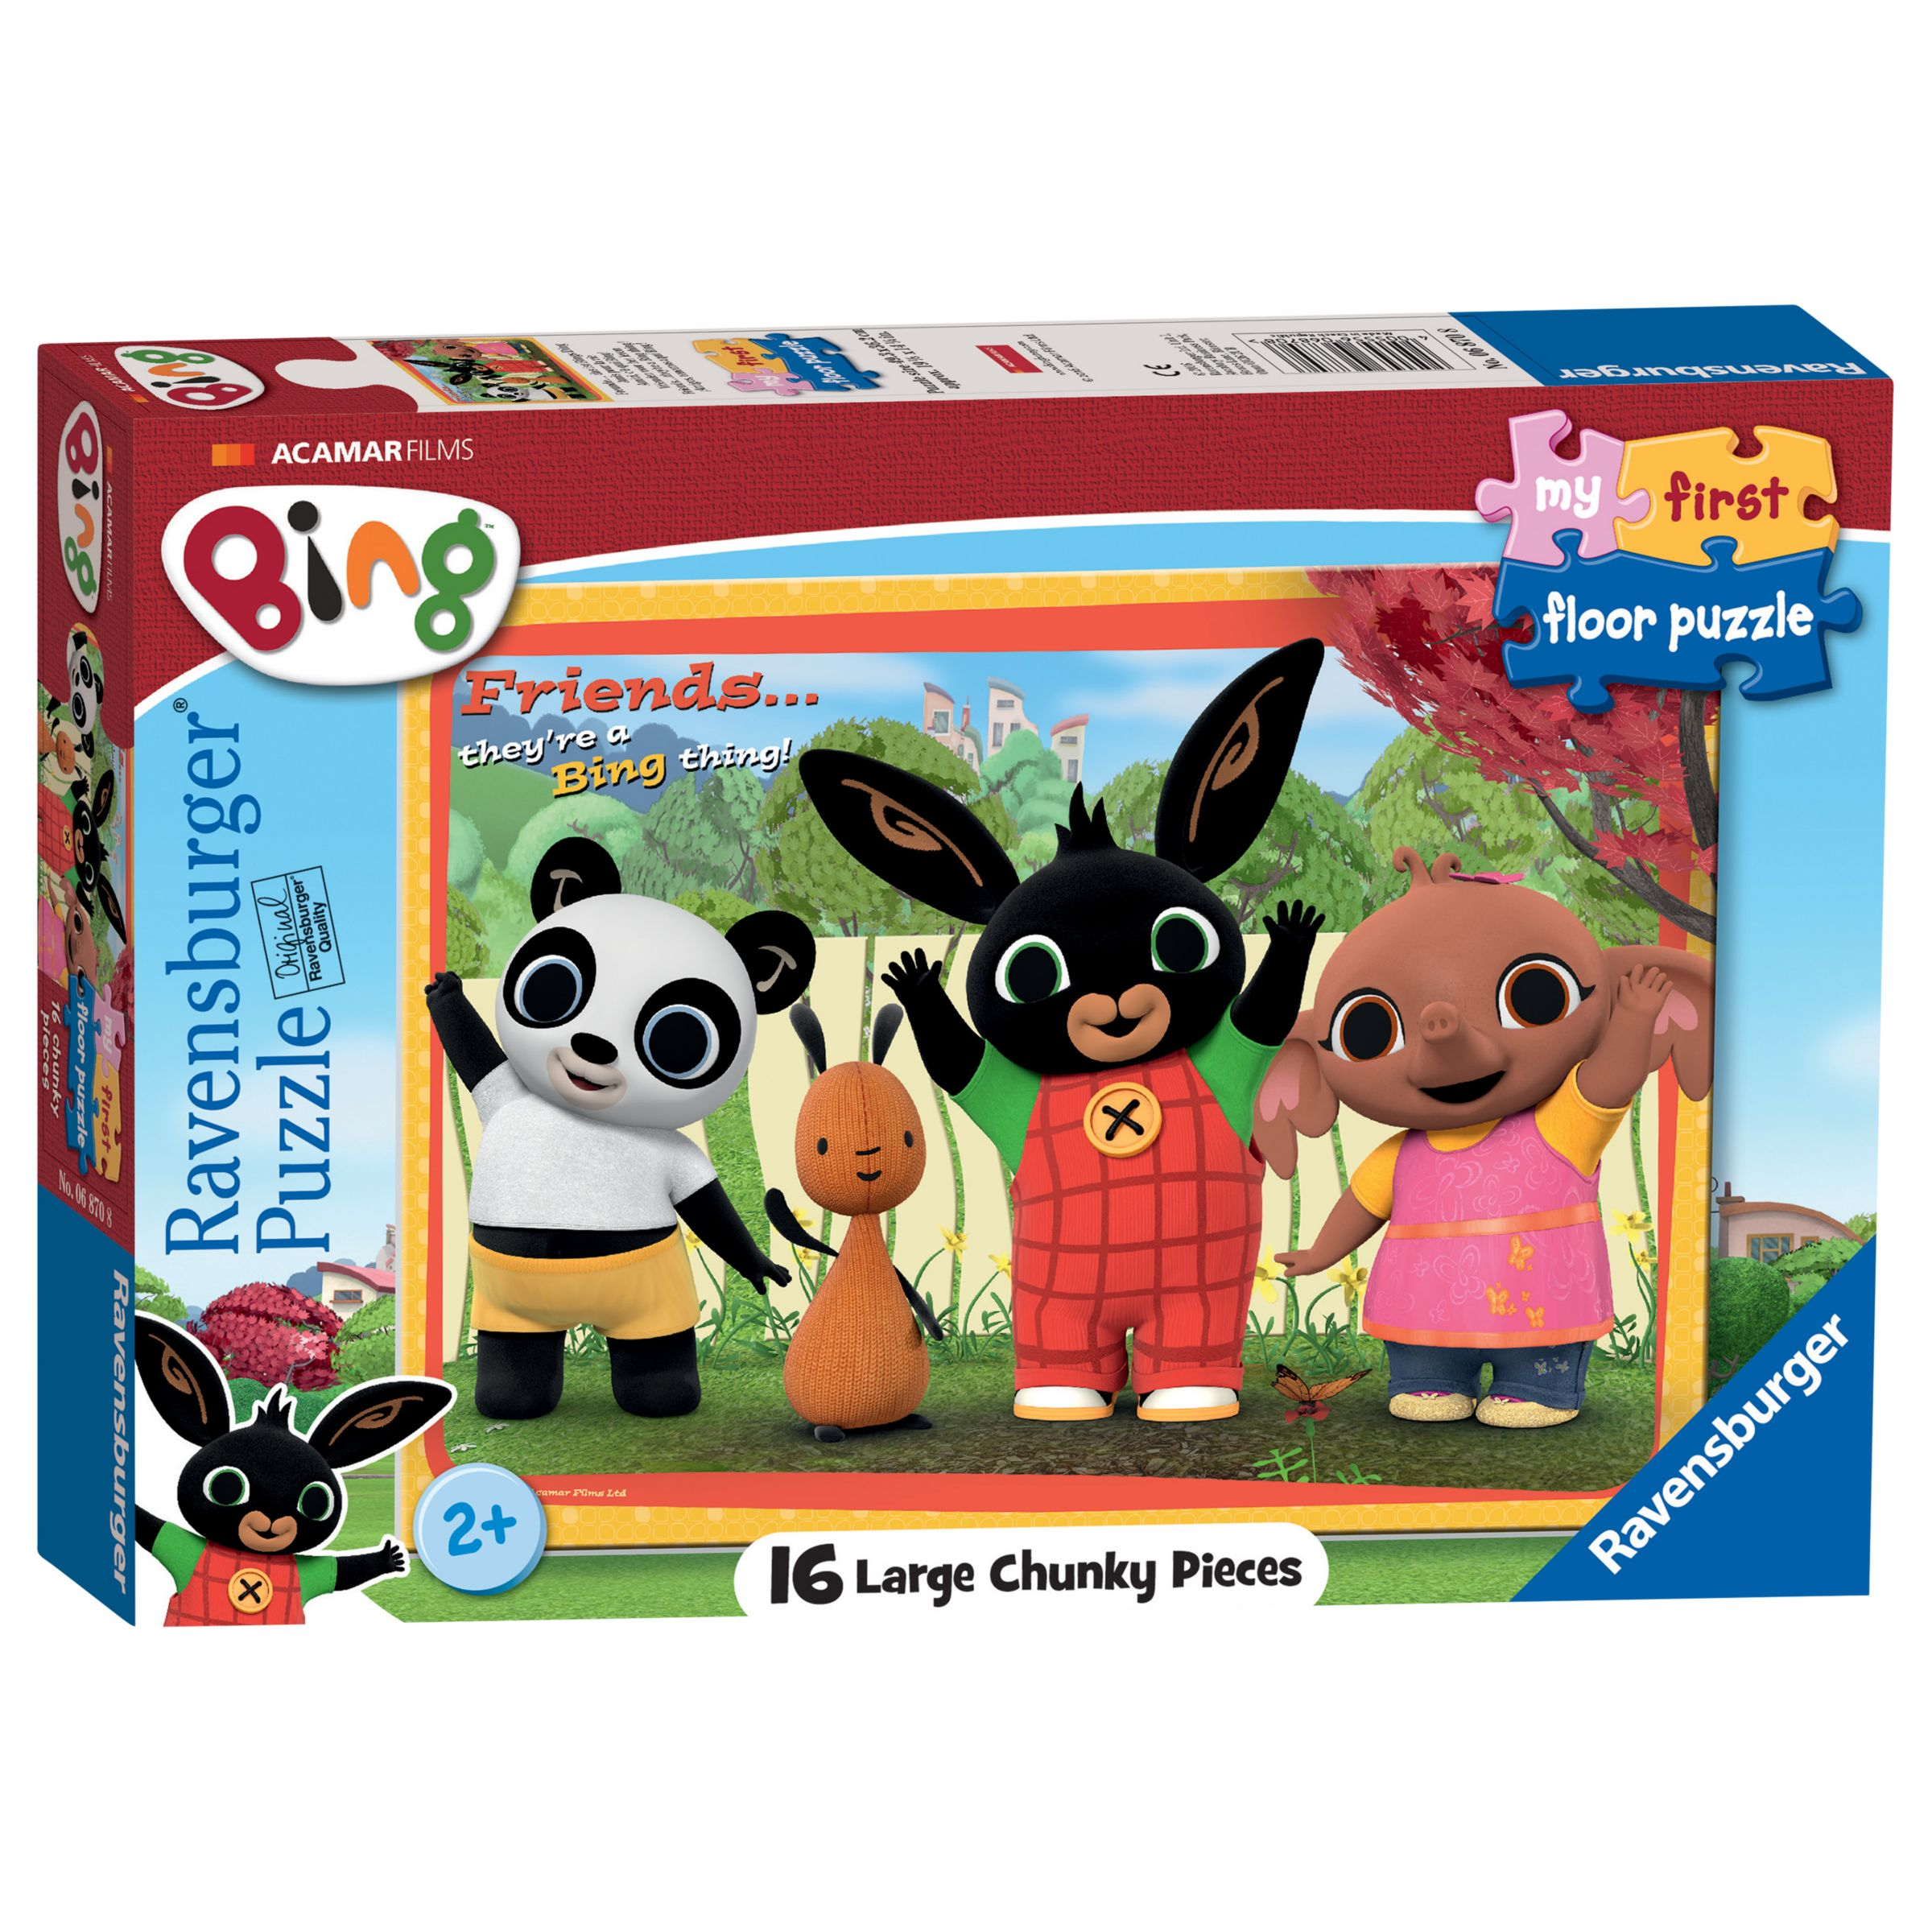 Ravensburger Ravensburger Bing Bunny My First Floor Puzzle